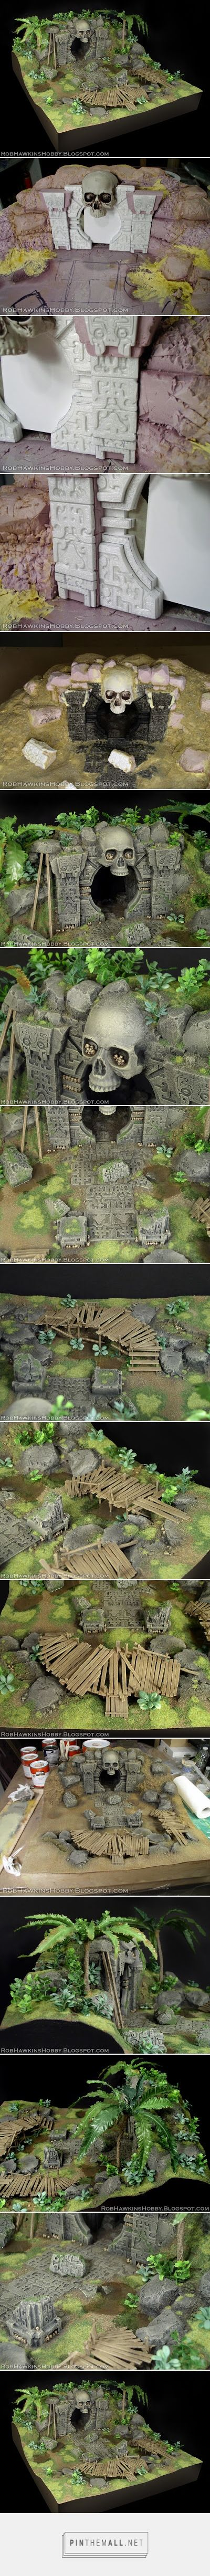 Rob Hawkins Hobby: Conan Terrain: Jungle Temple - created via http://pinthemall.net